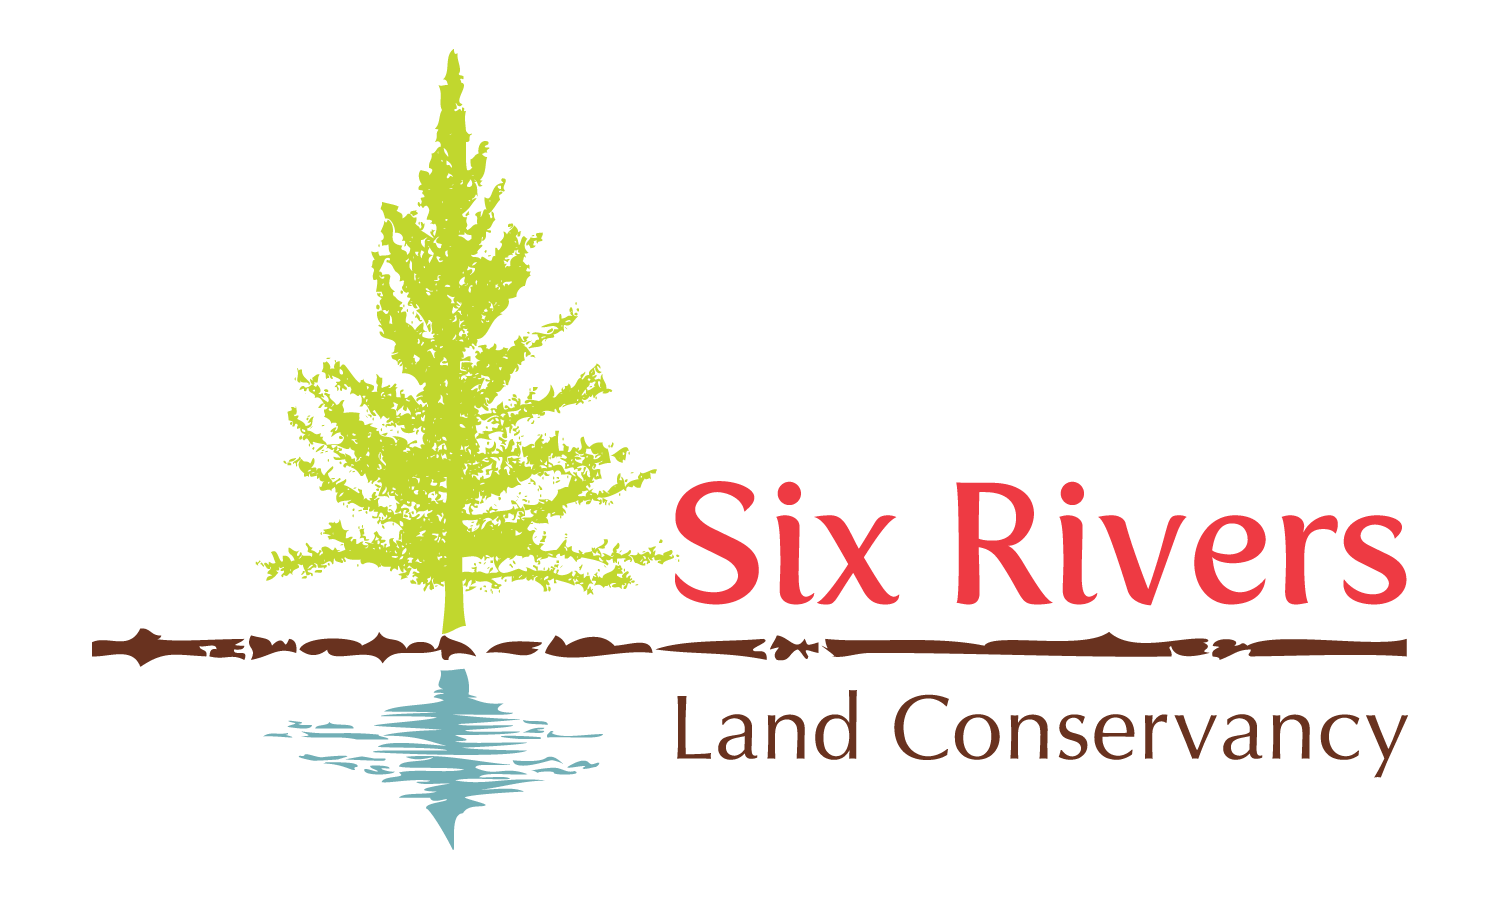 Six Rivers Land Conservancy